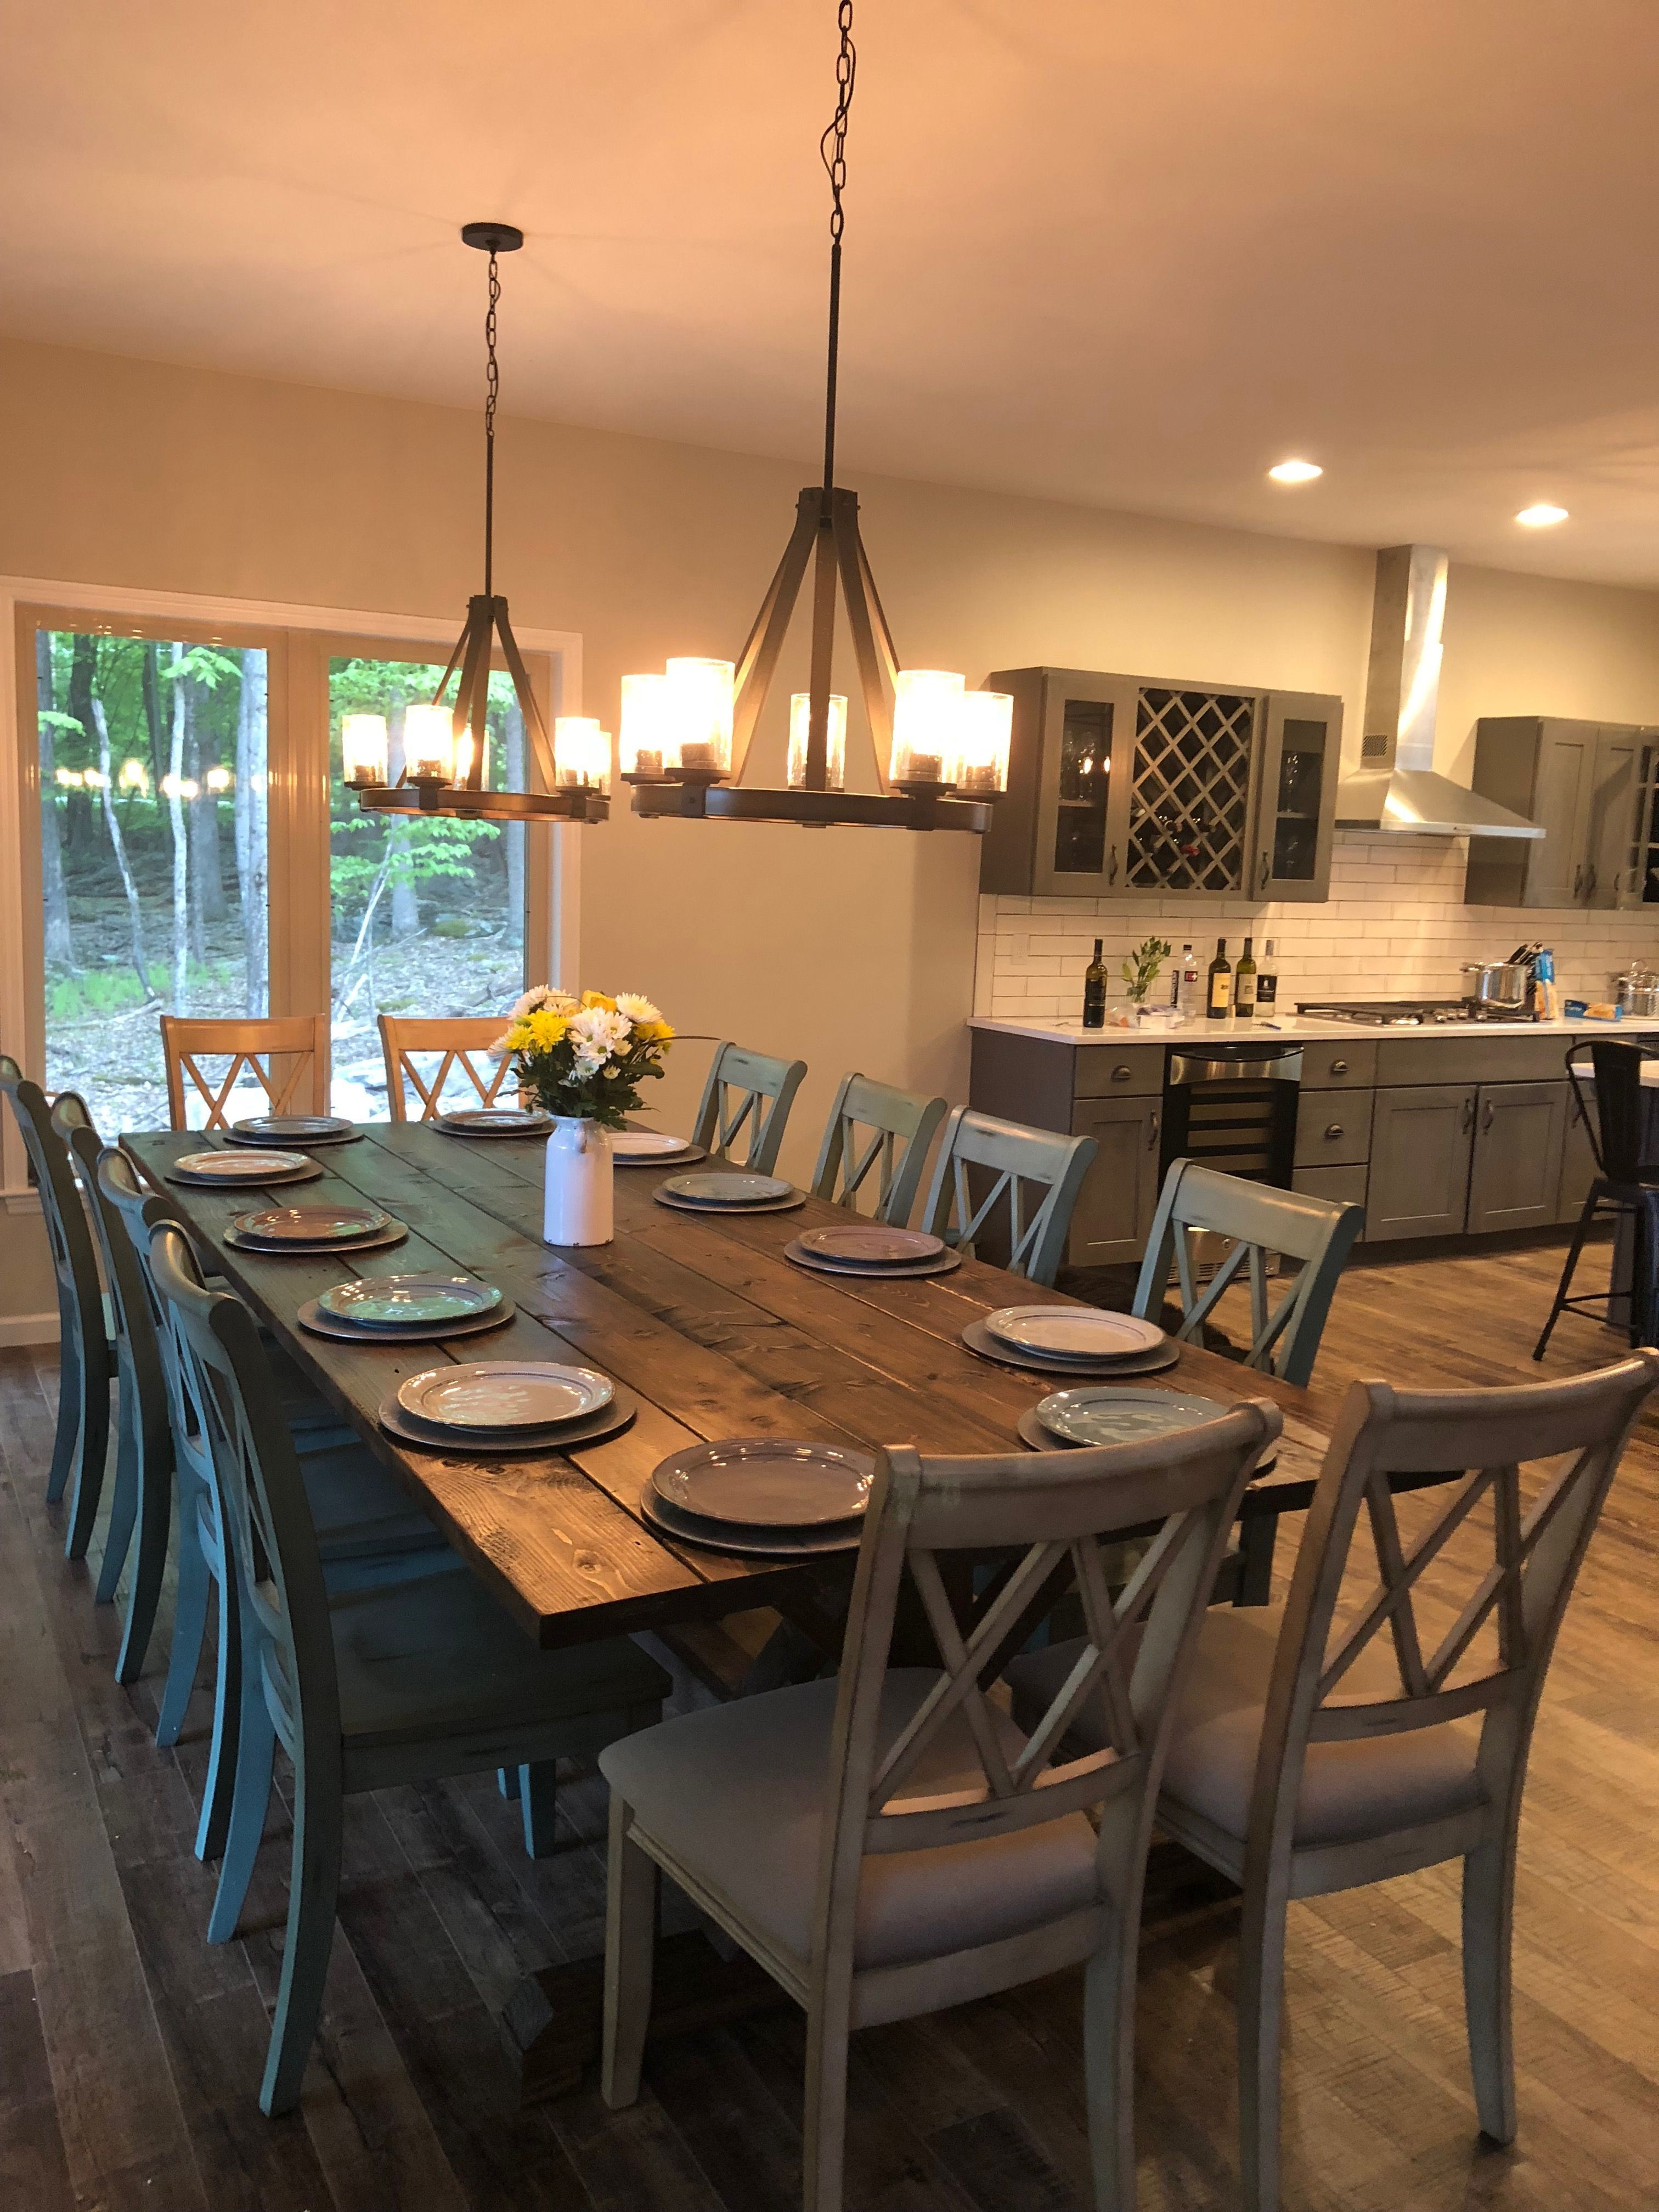 Dining Room Table: Large Farmhouse Table, Rustic Farm Table, Farmhouse Dining